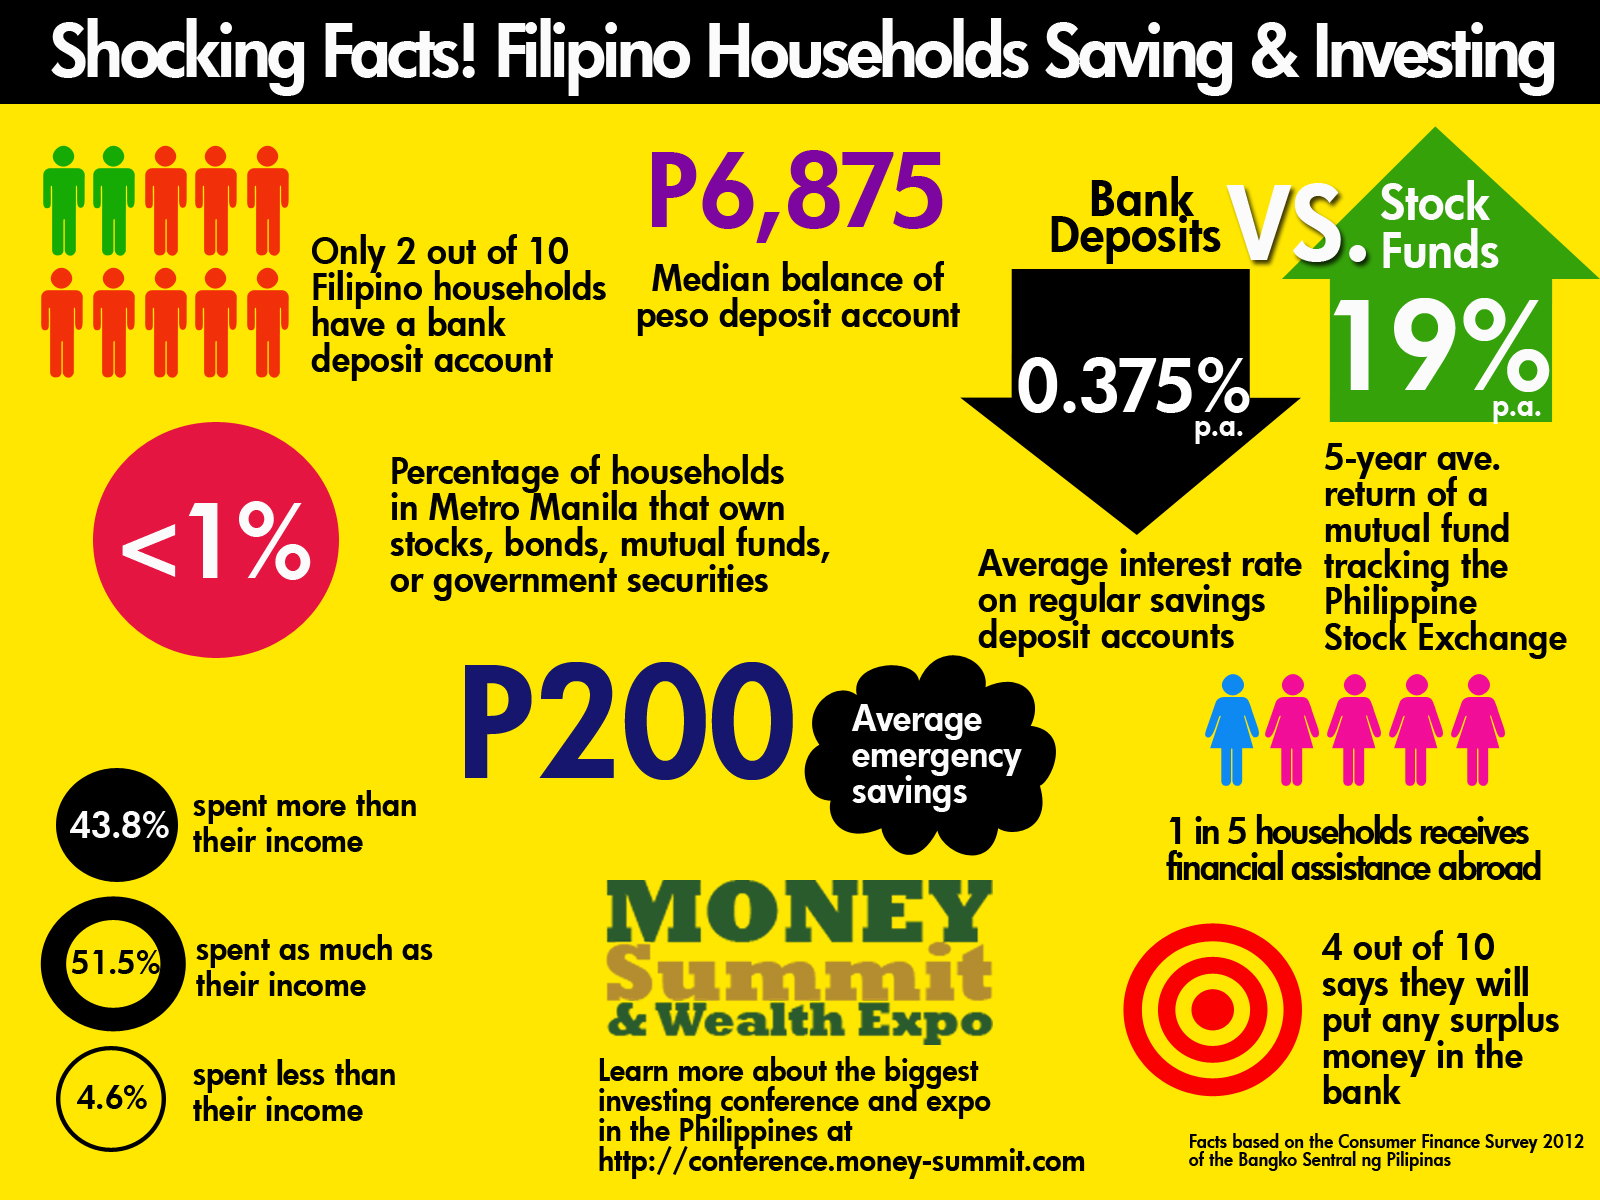 Why Invest In Stocks, Mutual Funds, And Real Estate In The Philippines €�  Money Summit & Wealth Expo